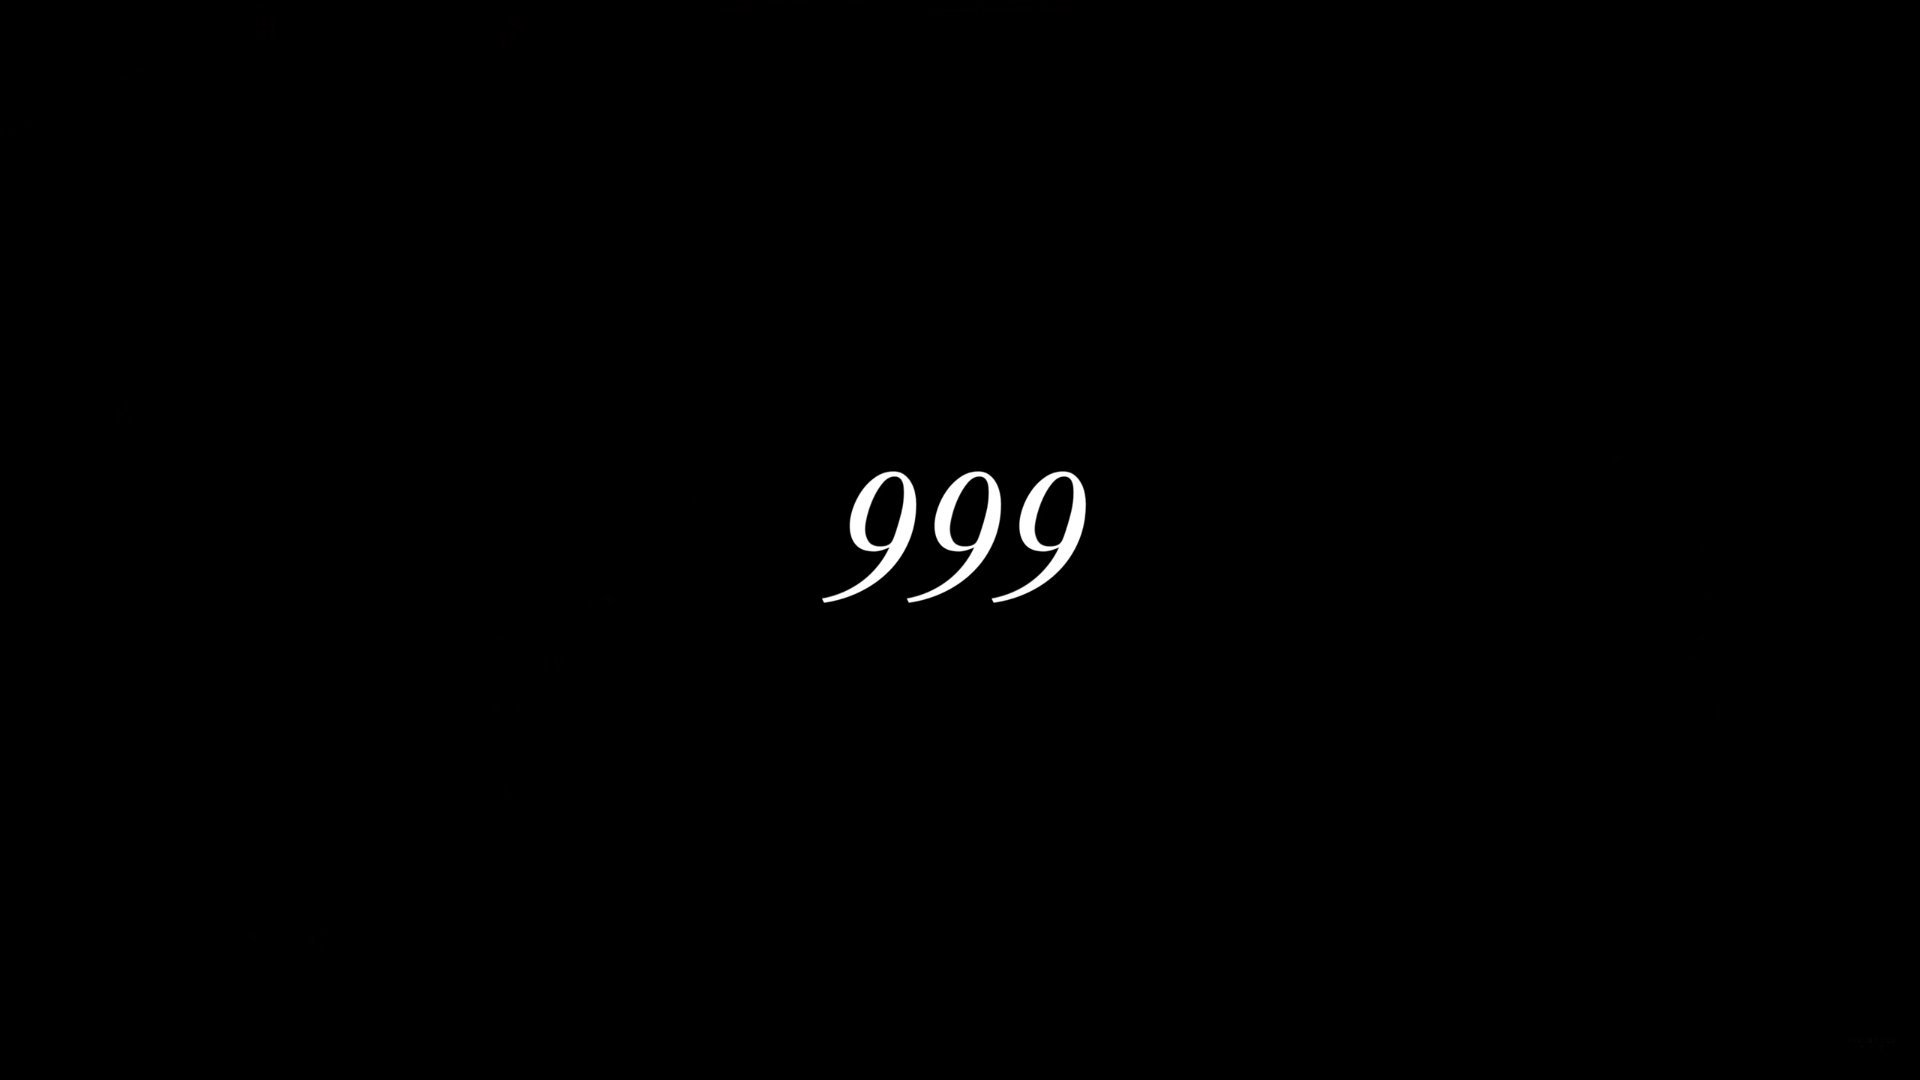 999 Wallpaper   taken from the Righteous music video Uncompressed 1920x1080